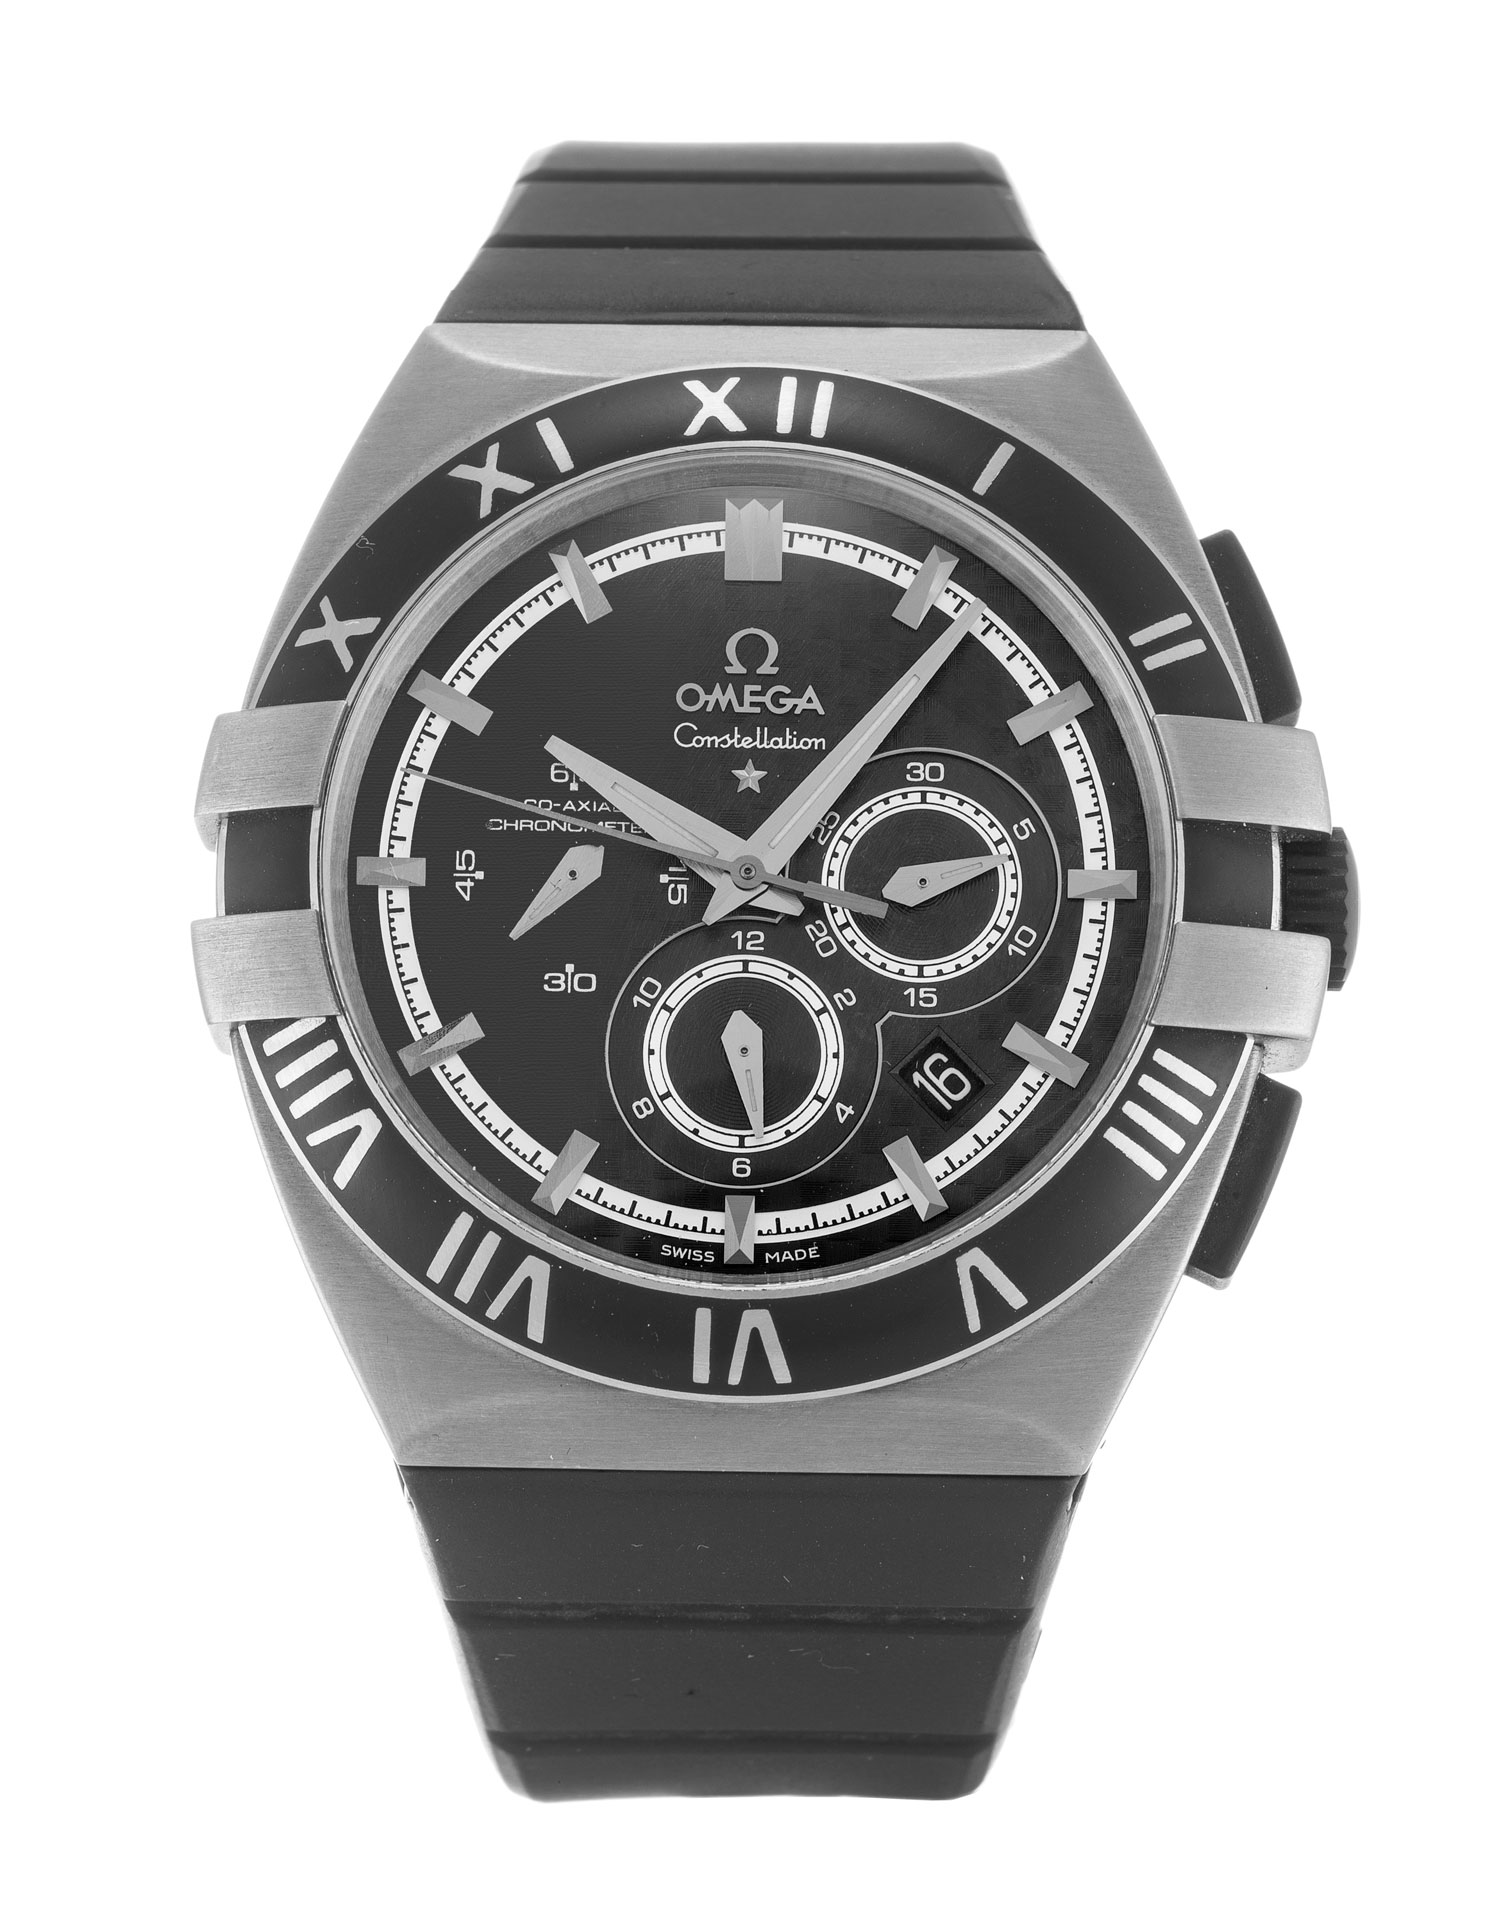 Omega Constellation Double… 121.92.41.50.01.001 Mens 41 Mm Titanium Case Automatic Co-axial Movement – iapac.to